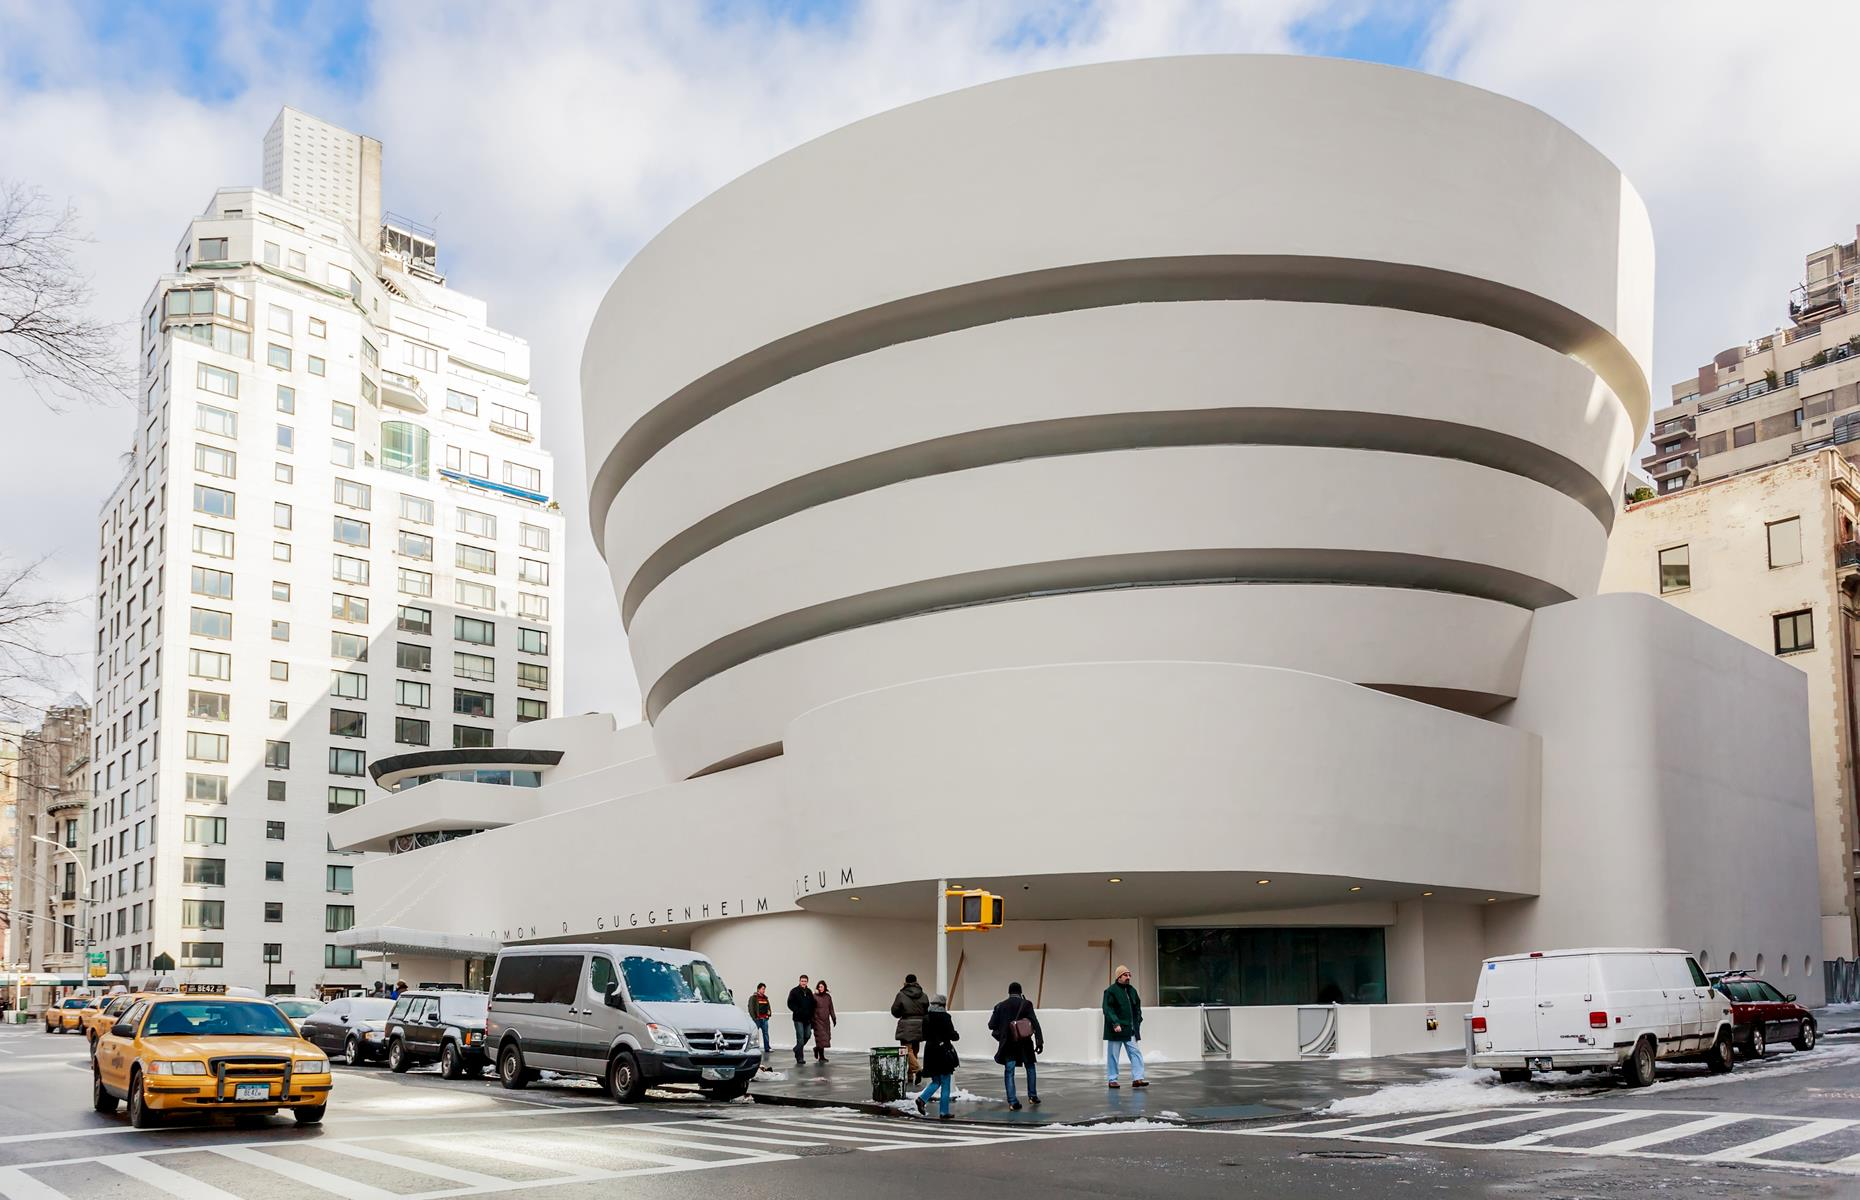 Slide 15 of 28: The waterfront museum would have joined the famed Solomon R. Guggenheim Museum in New York City (pictured). However, after lengthy debates, the Finnish government decided not to contribute the necessary funds to the museum project. The Solomon R. Guggenheim Foundation did not find alternative funding so the project ultimately fell through.